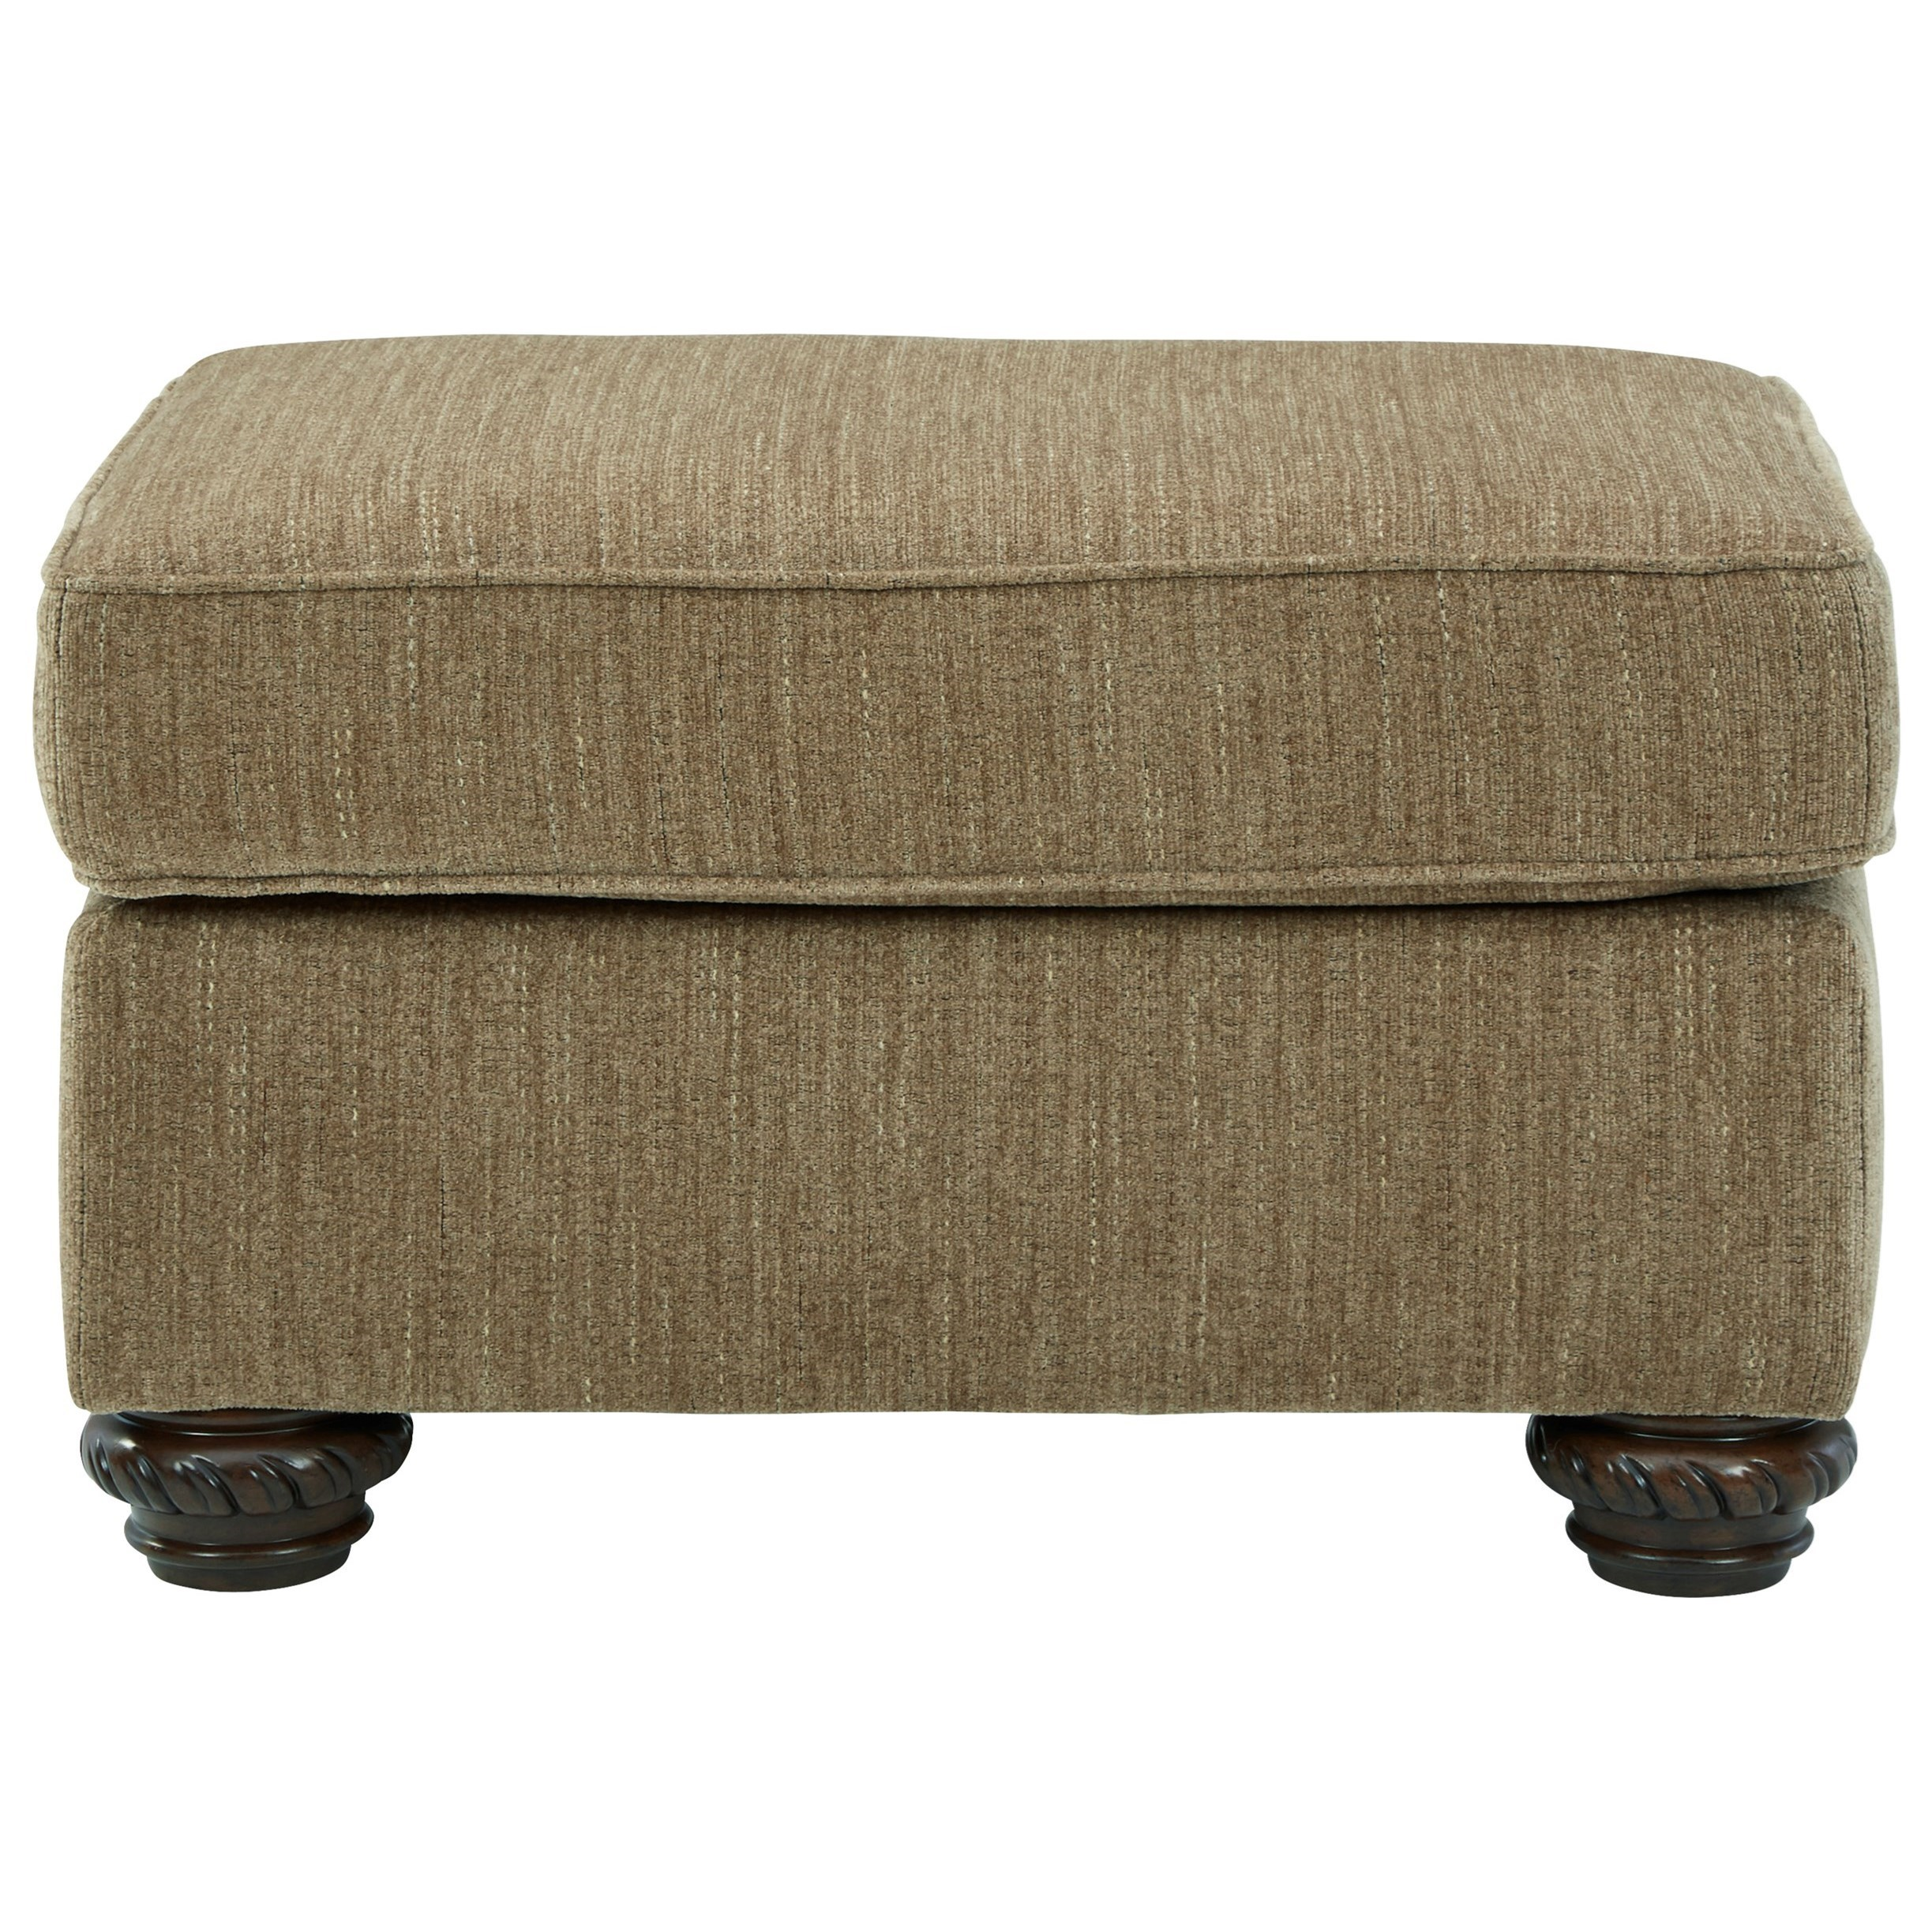 Briaroaks Ottoman by Benchcraft at Northeast Factory Direct